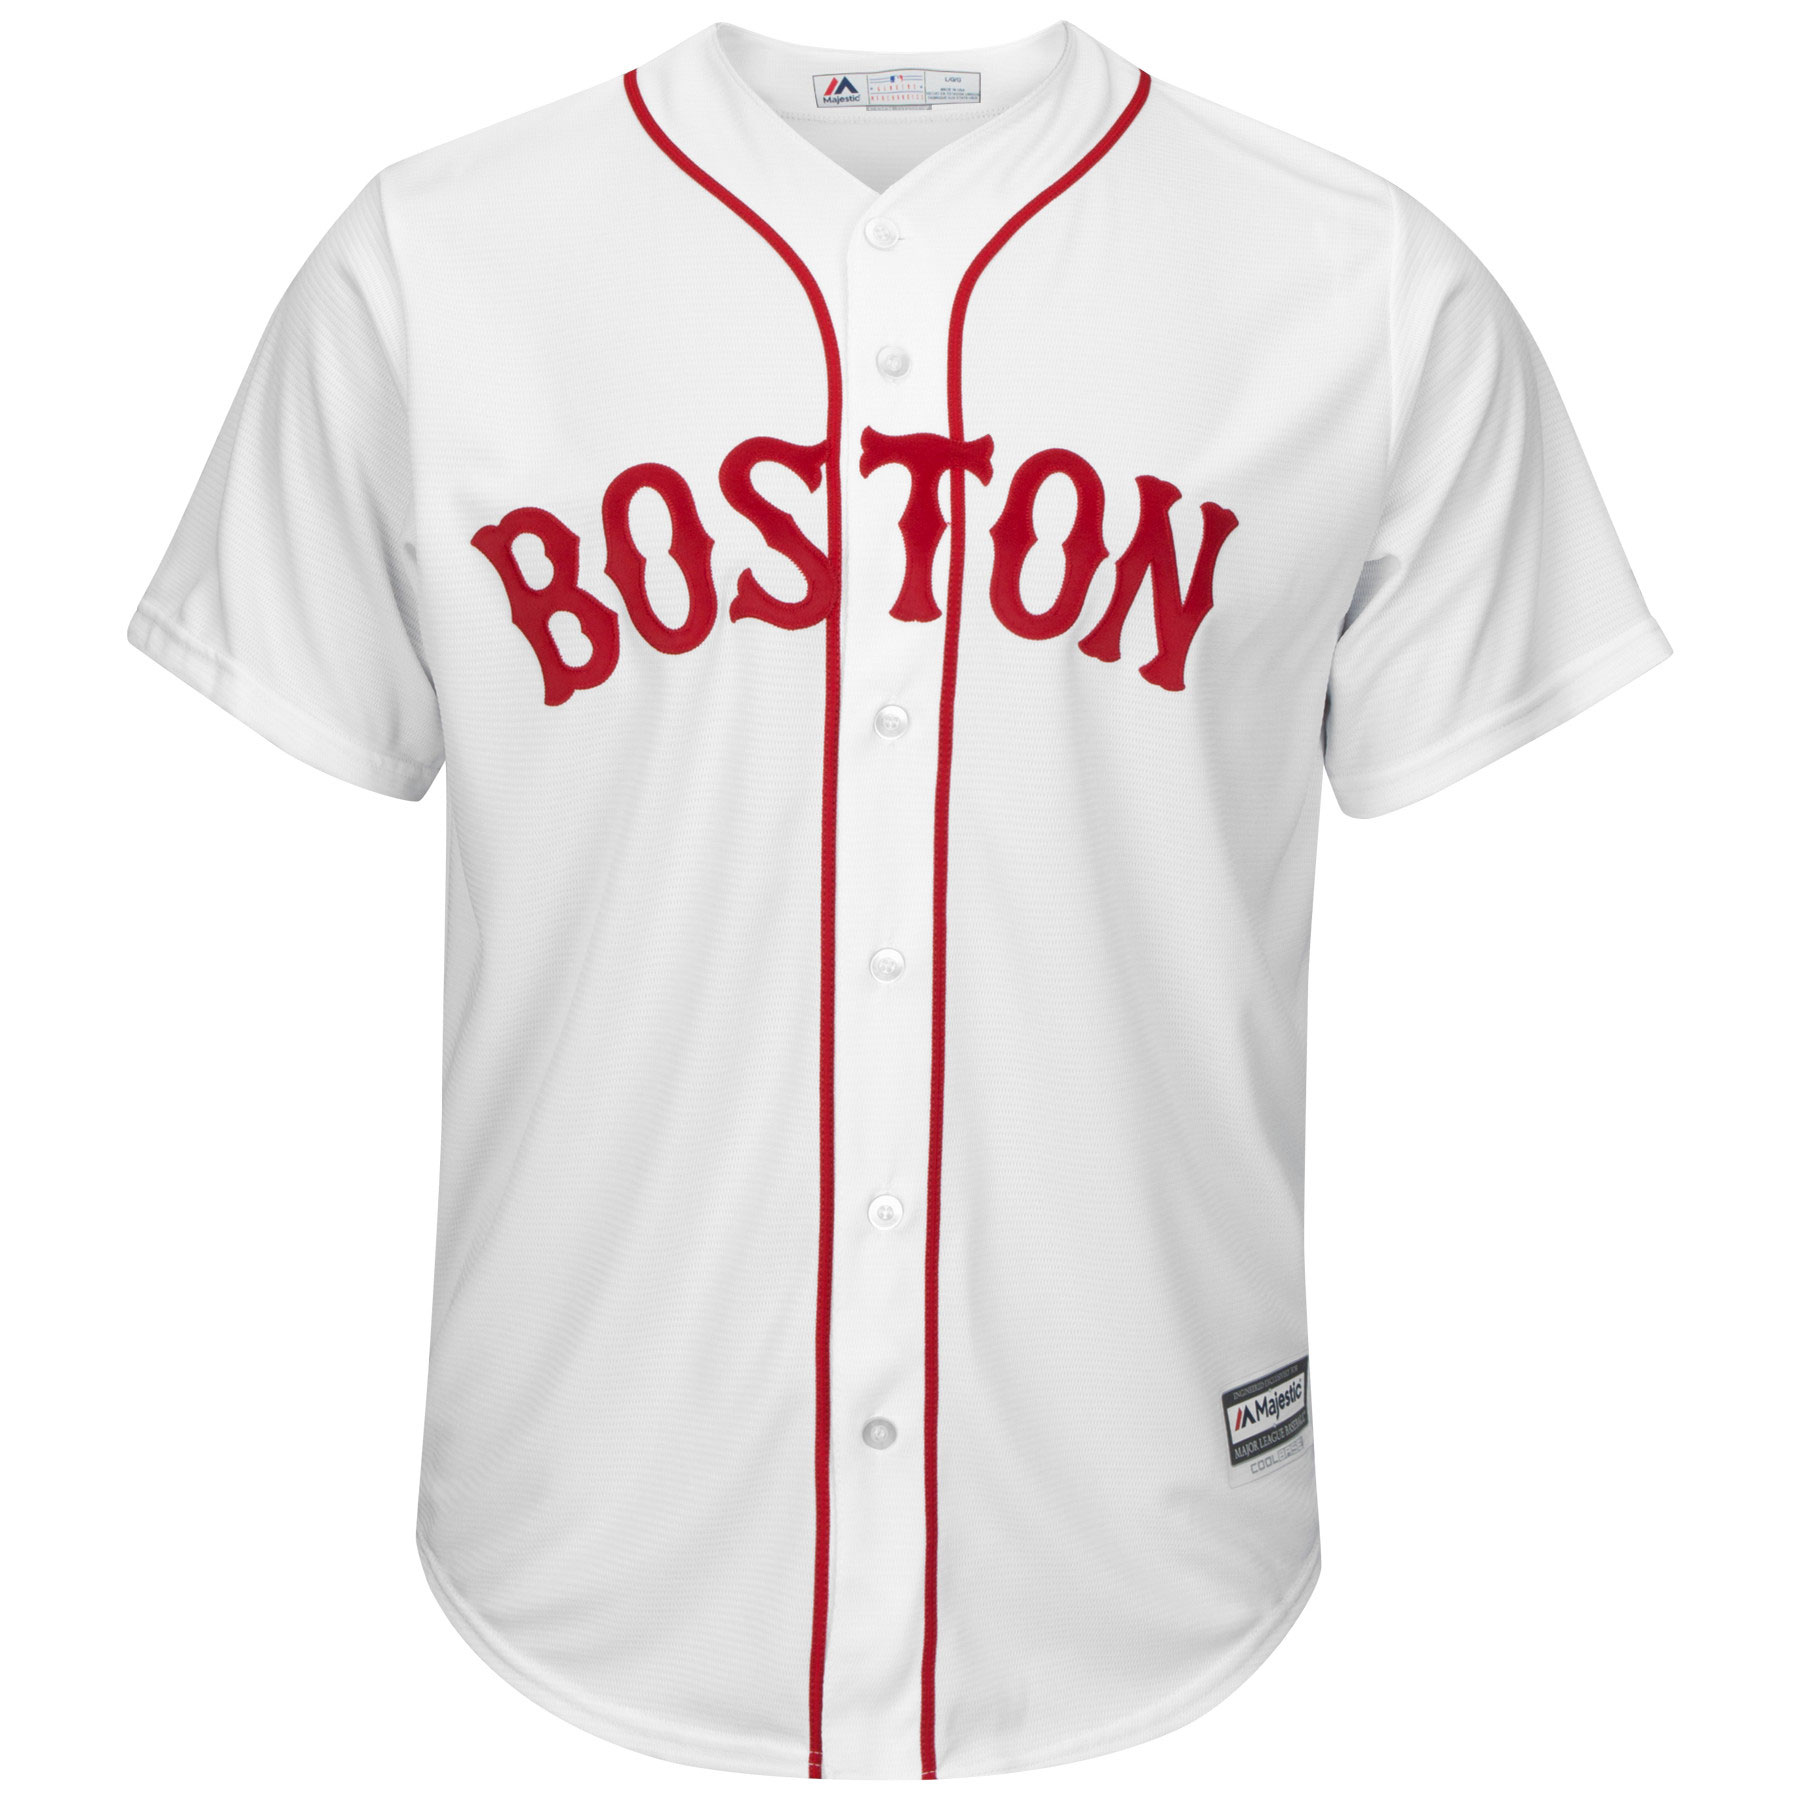 Details about Boston Red Sox Mens MLB Majestic Cool Base Button Up White  Jersey Size  40 Small dd668dd8e